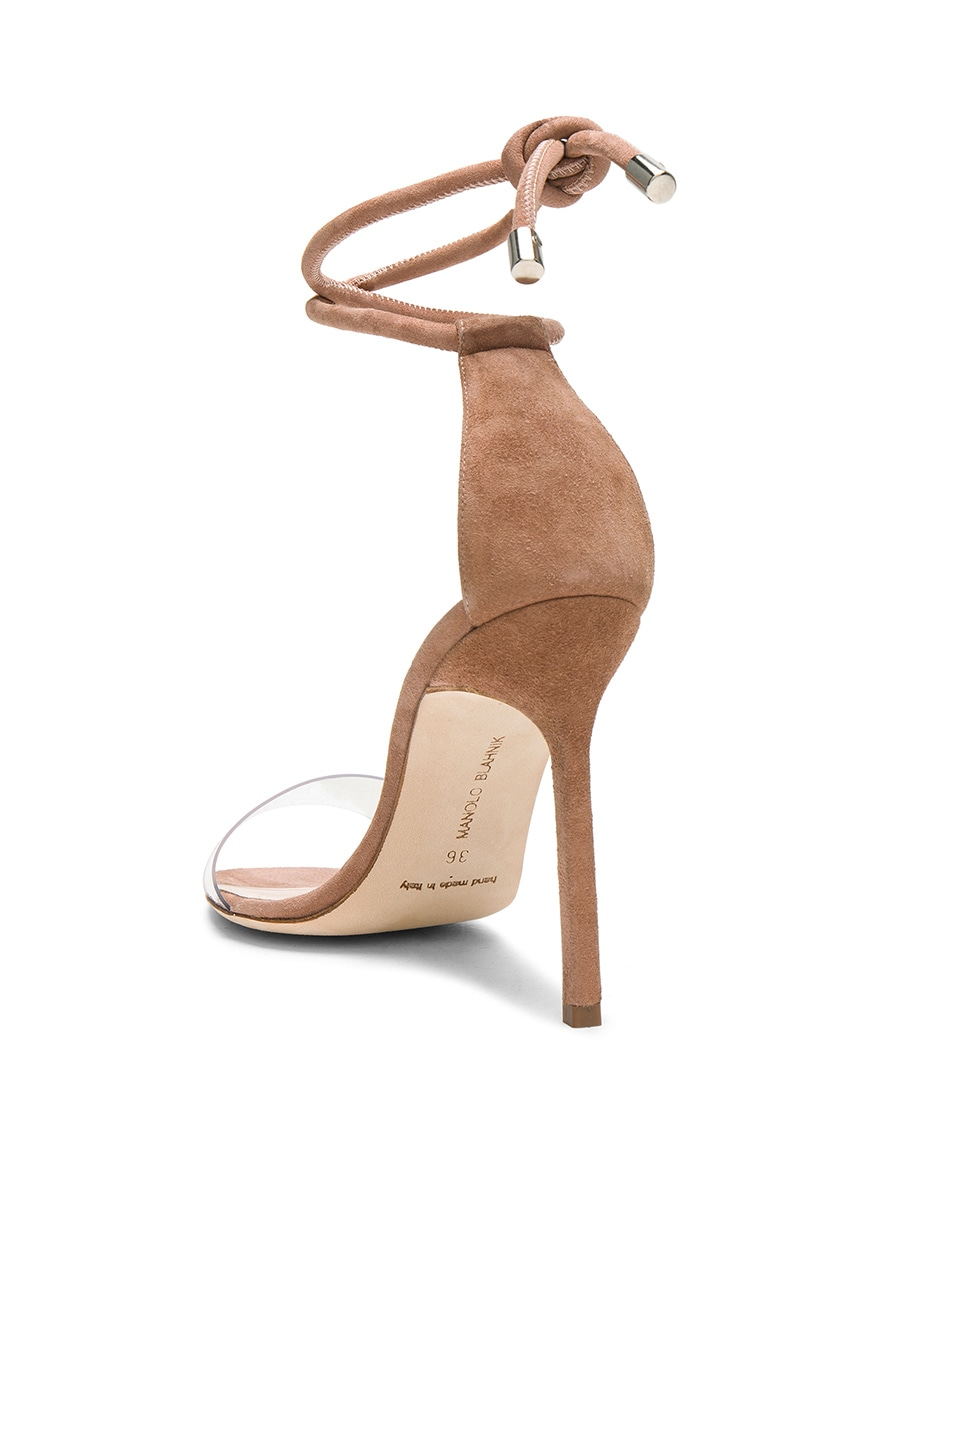 Image 3 of Manolo Blahnik 105 Suede Estro Sandals in Rose Nude Suede